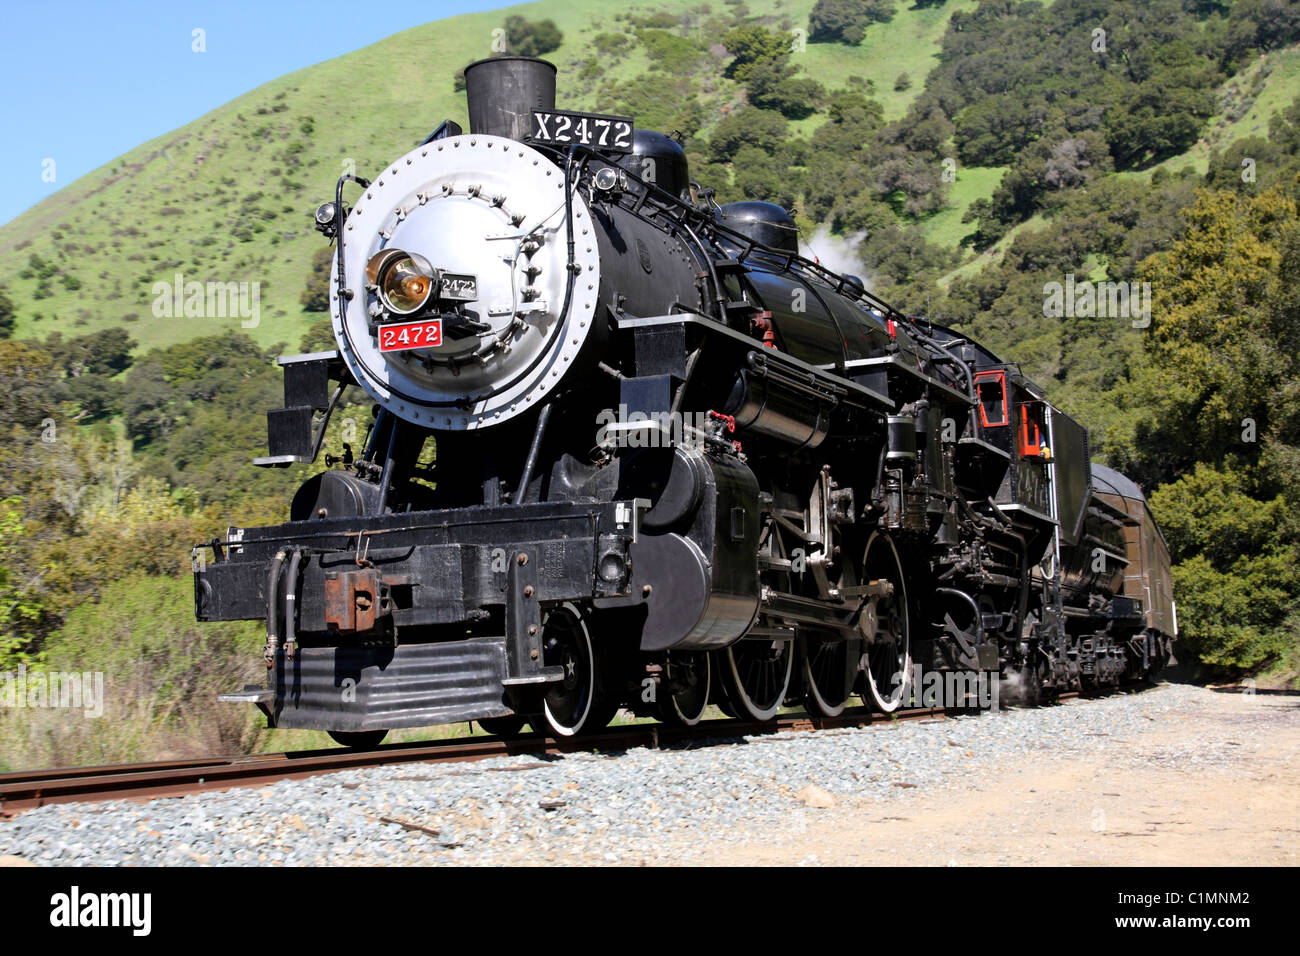 Southern Pacific Steam Locomotive #2472 running through Niles Canyon.